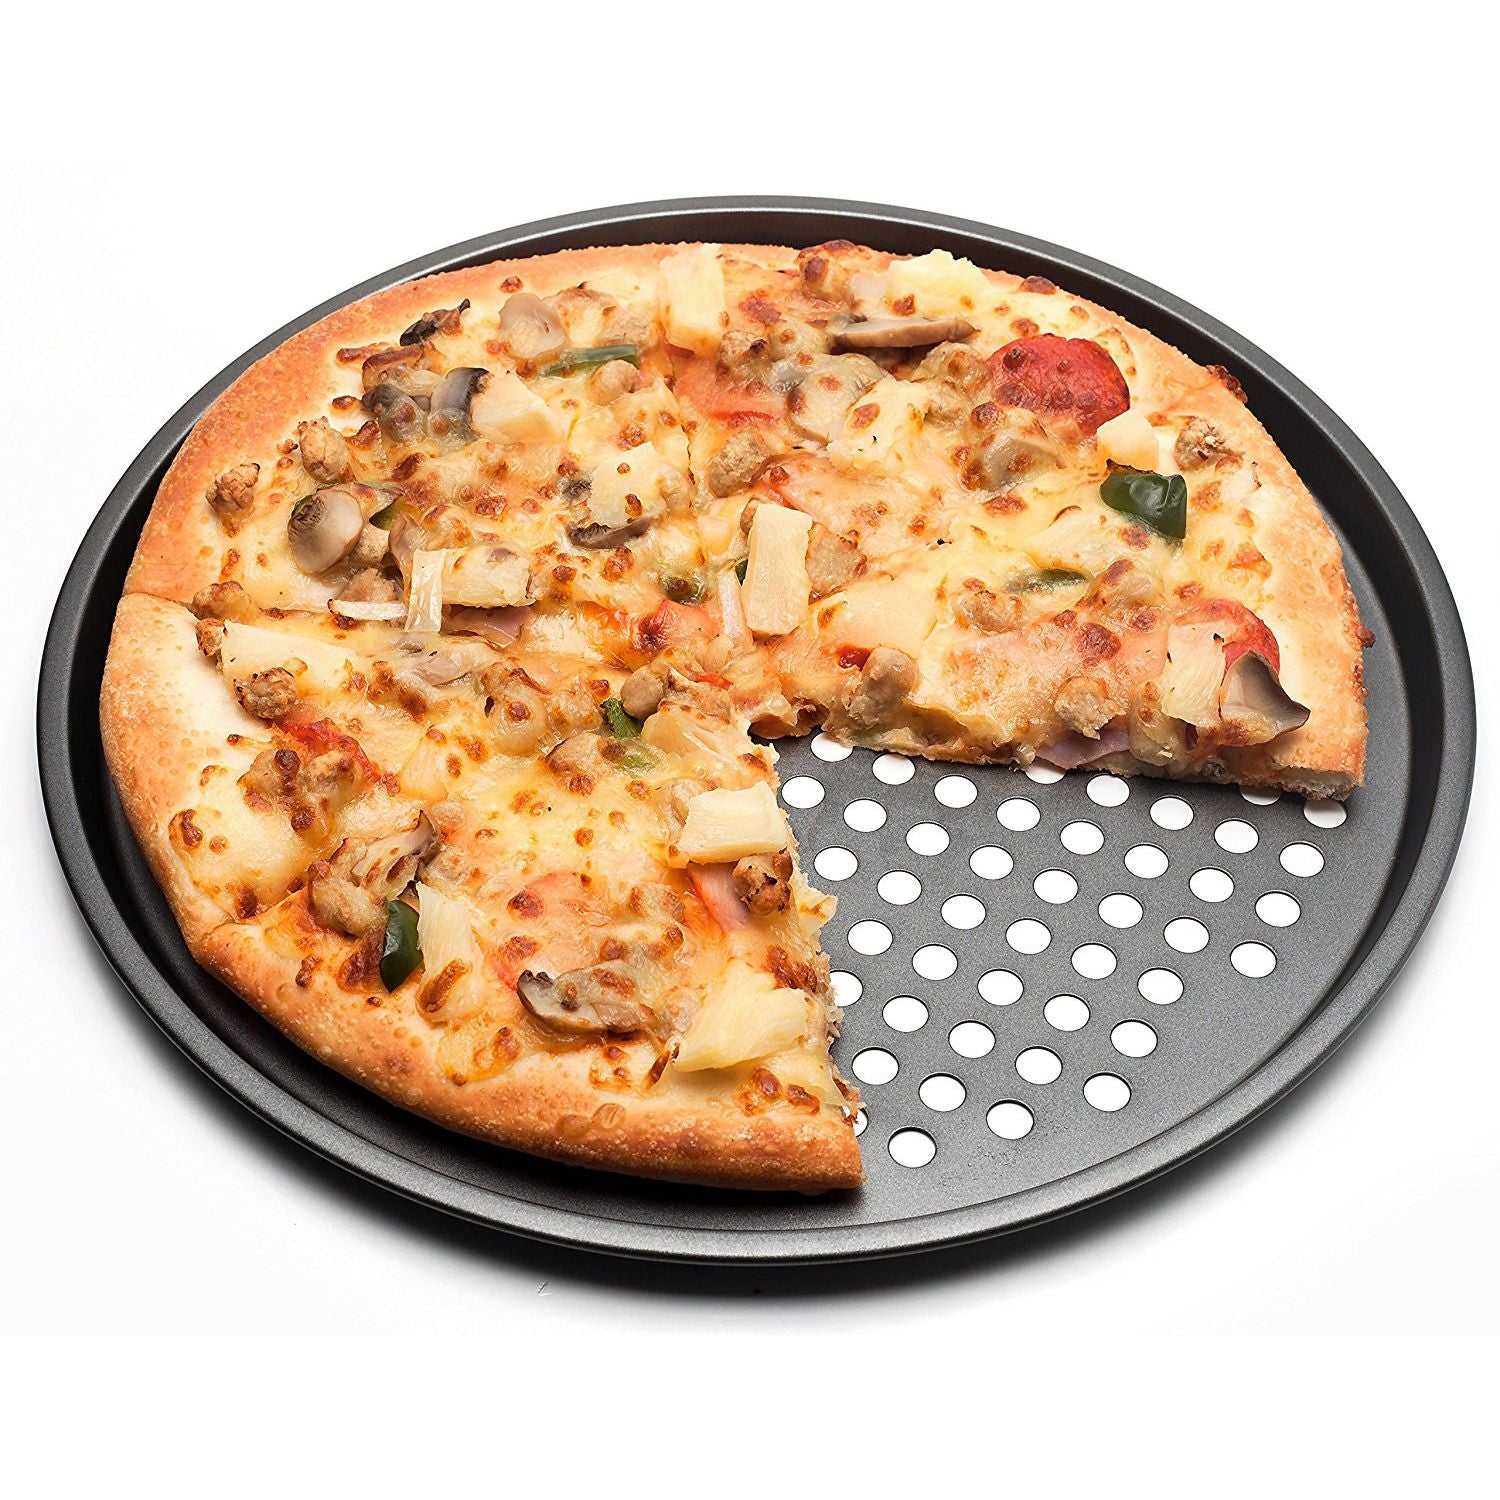 HOT-Carbon Steel Nonstick Pizza Baking Pan Tray 32cm Pizza Plate Dishes Holder Bakeware Home Kitchen Baking Tools Accessories